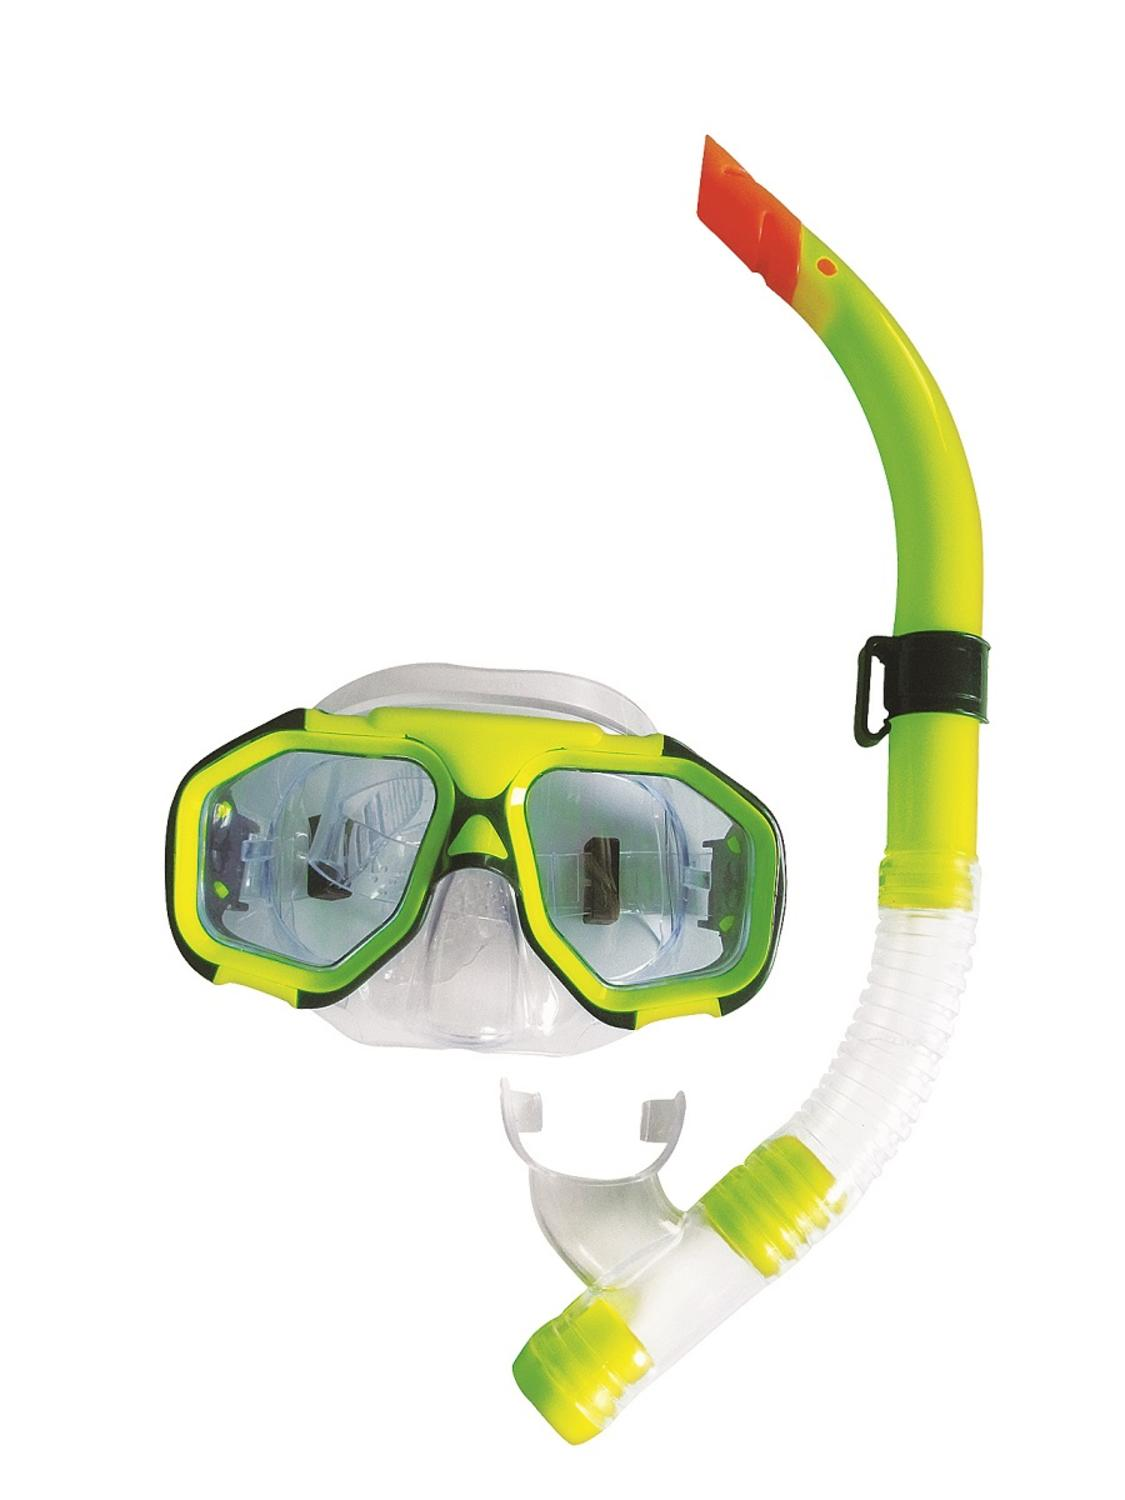 Lime Green Zray Teen Young Adult Scuba Mask and Snorkel Dive Set by Pool Central